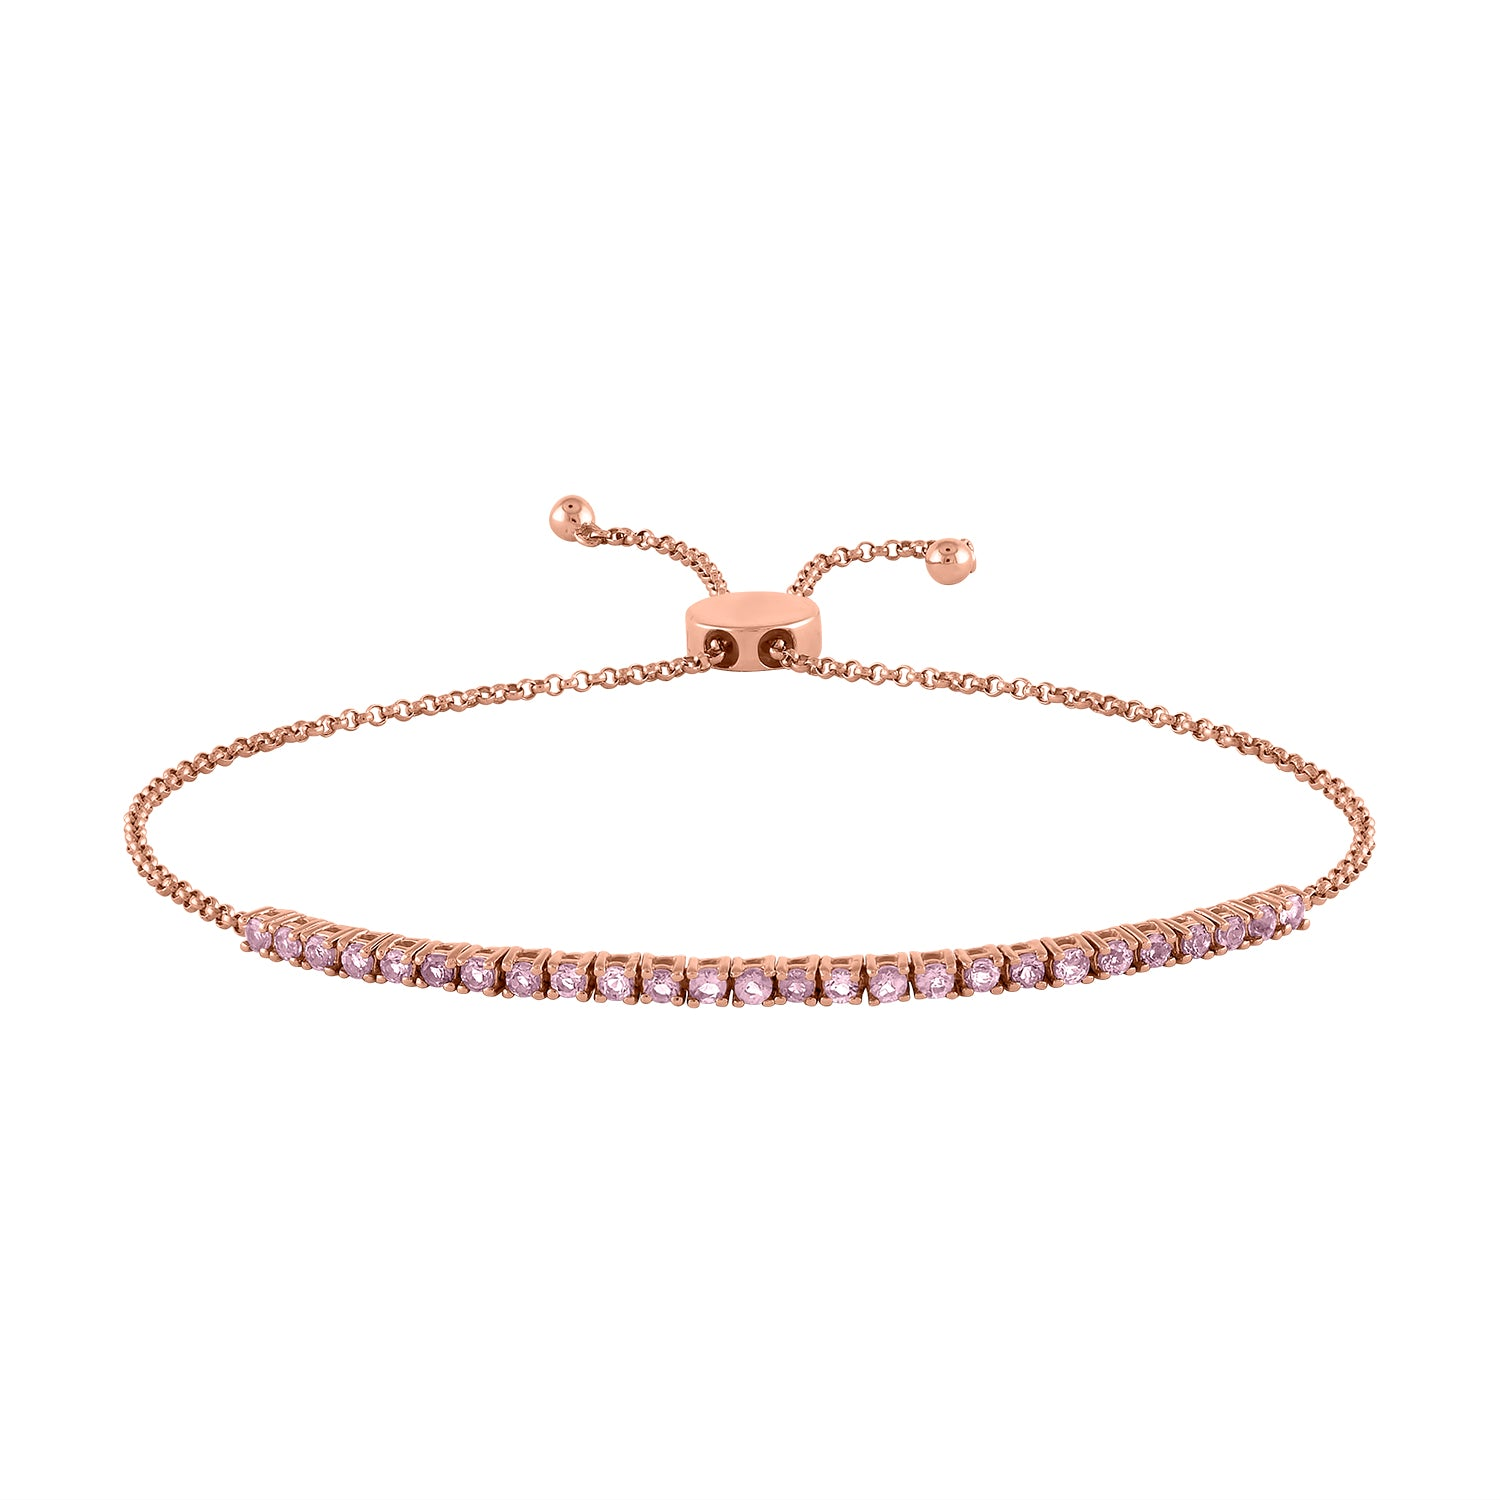 26 stone tennis bracelet with bolo pull